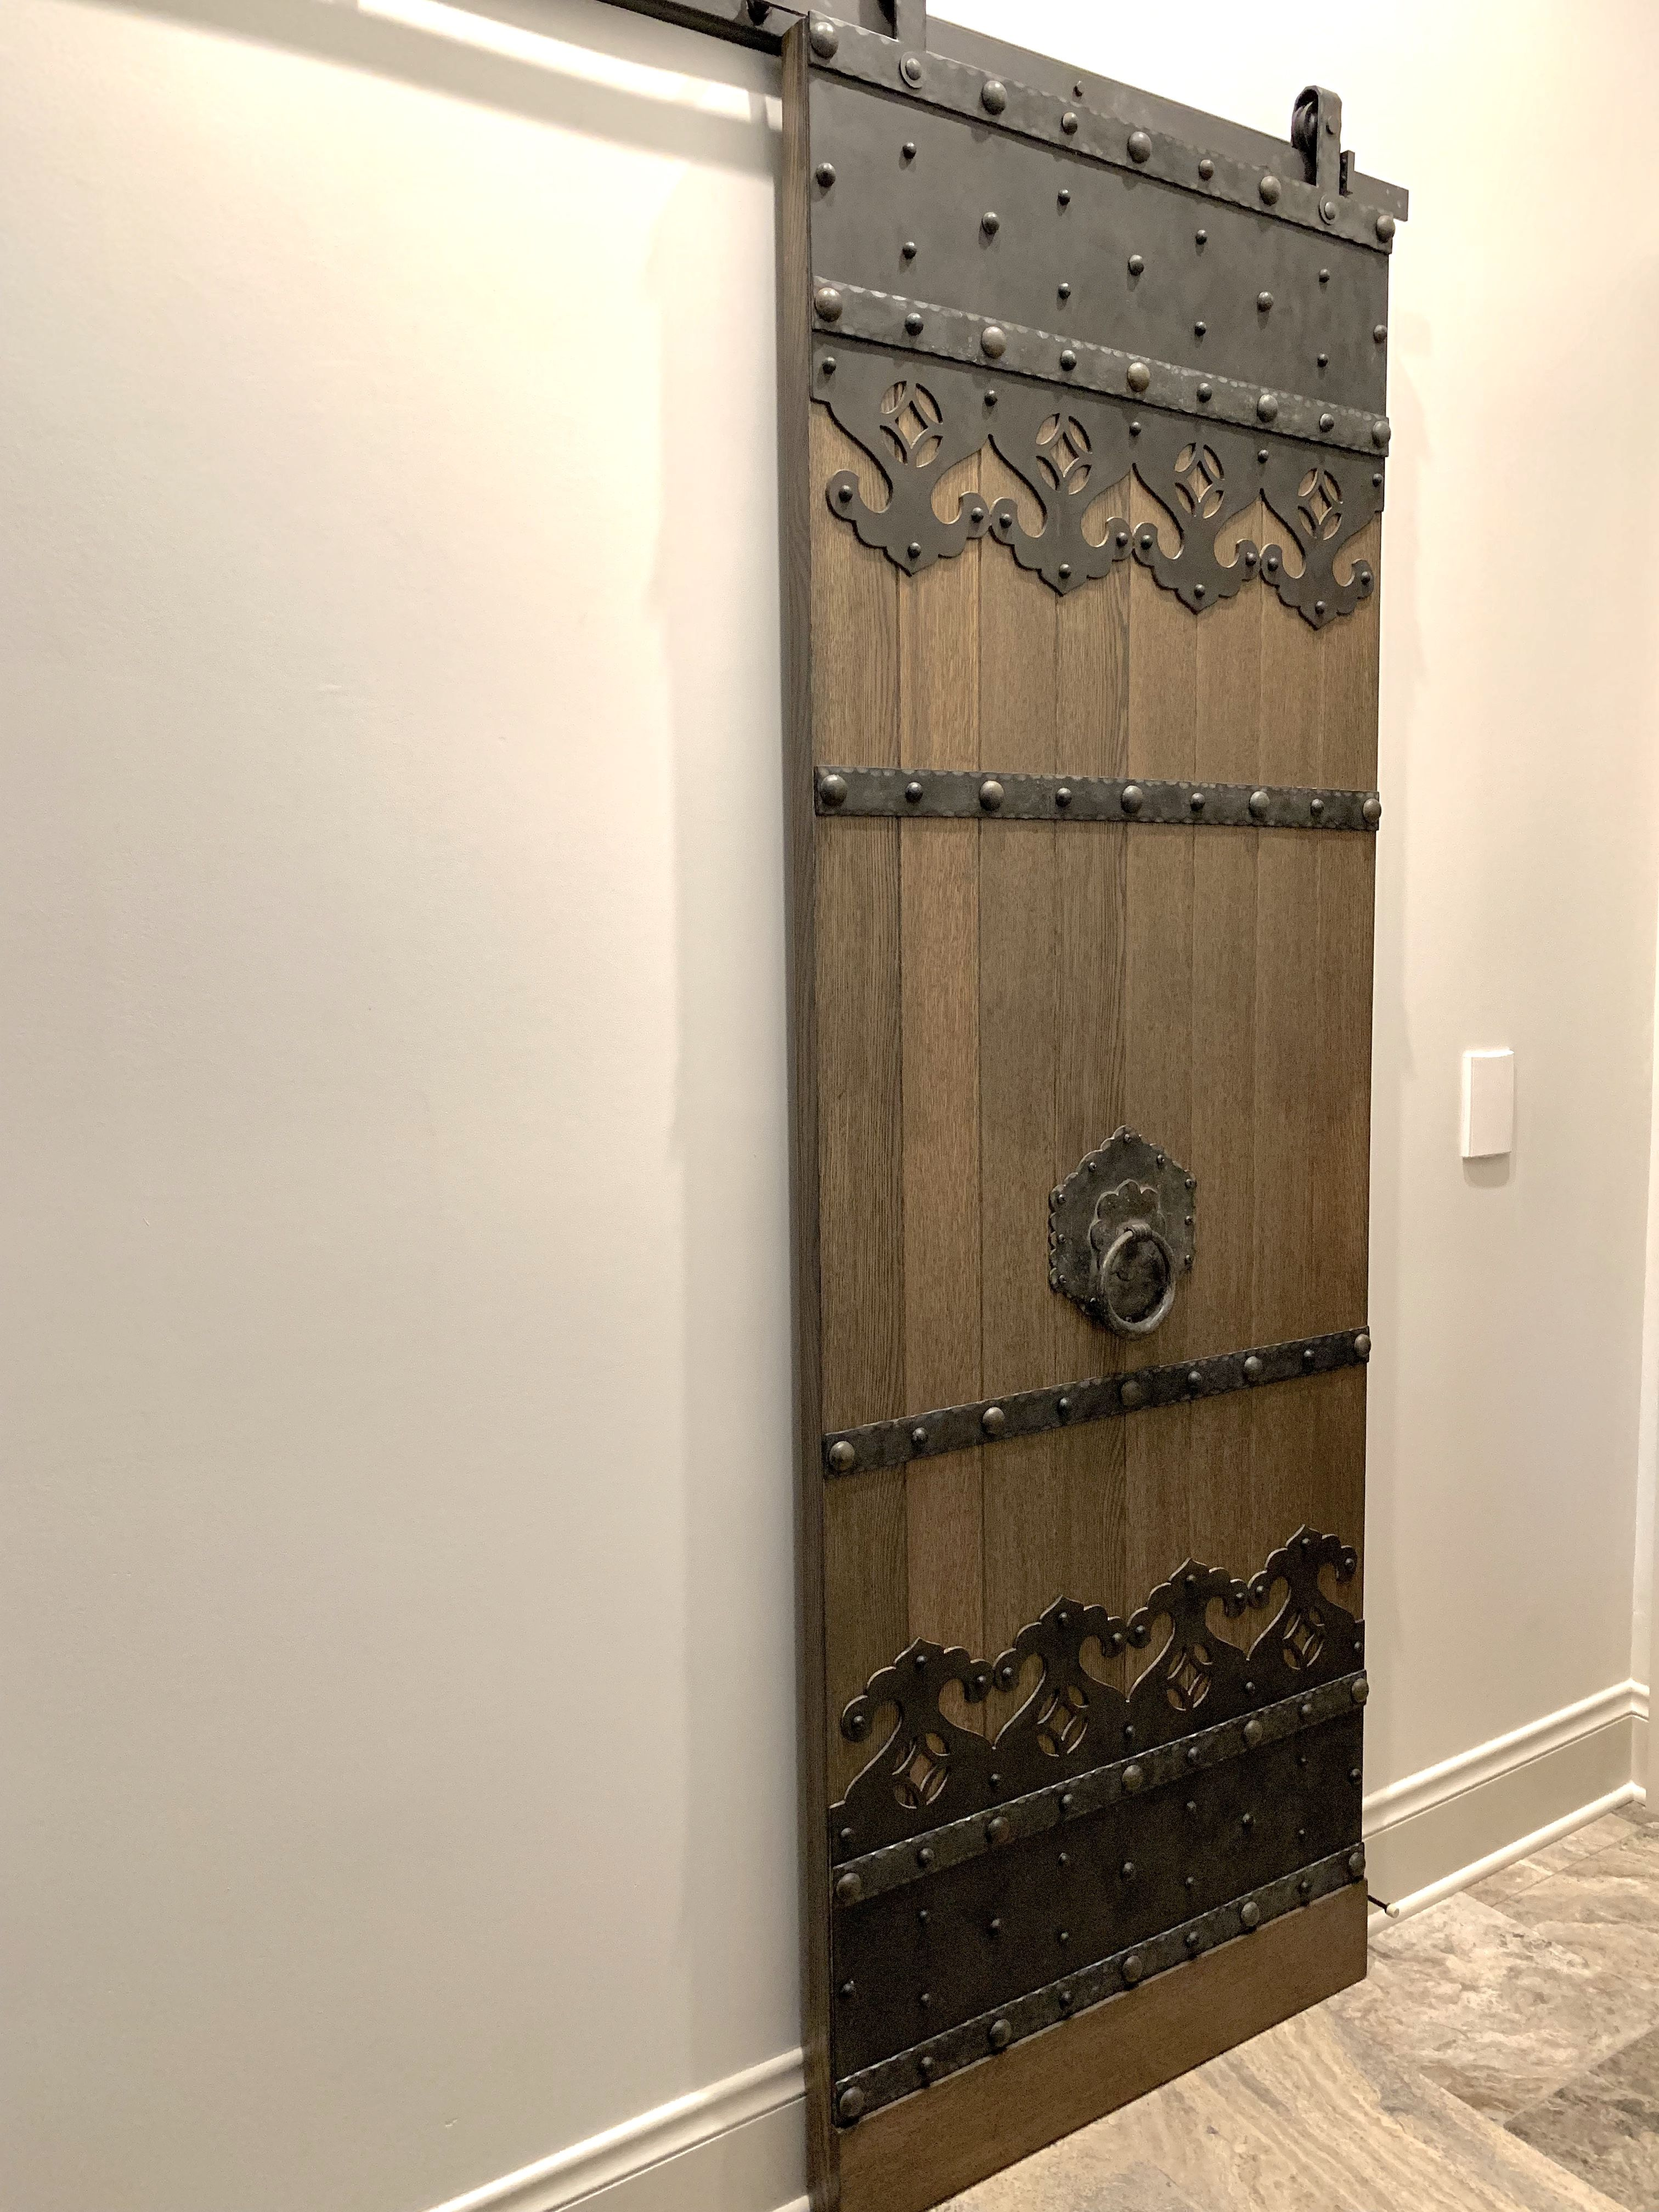 Call Or Email Old West Iron For A Quote On Any Of The Iron Work Shown On The Door Custom Barn Doors Sliding Barn Door Hardware Doors